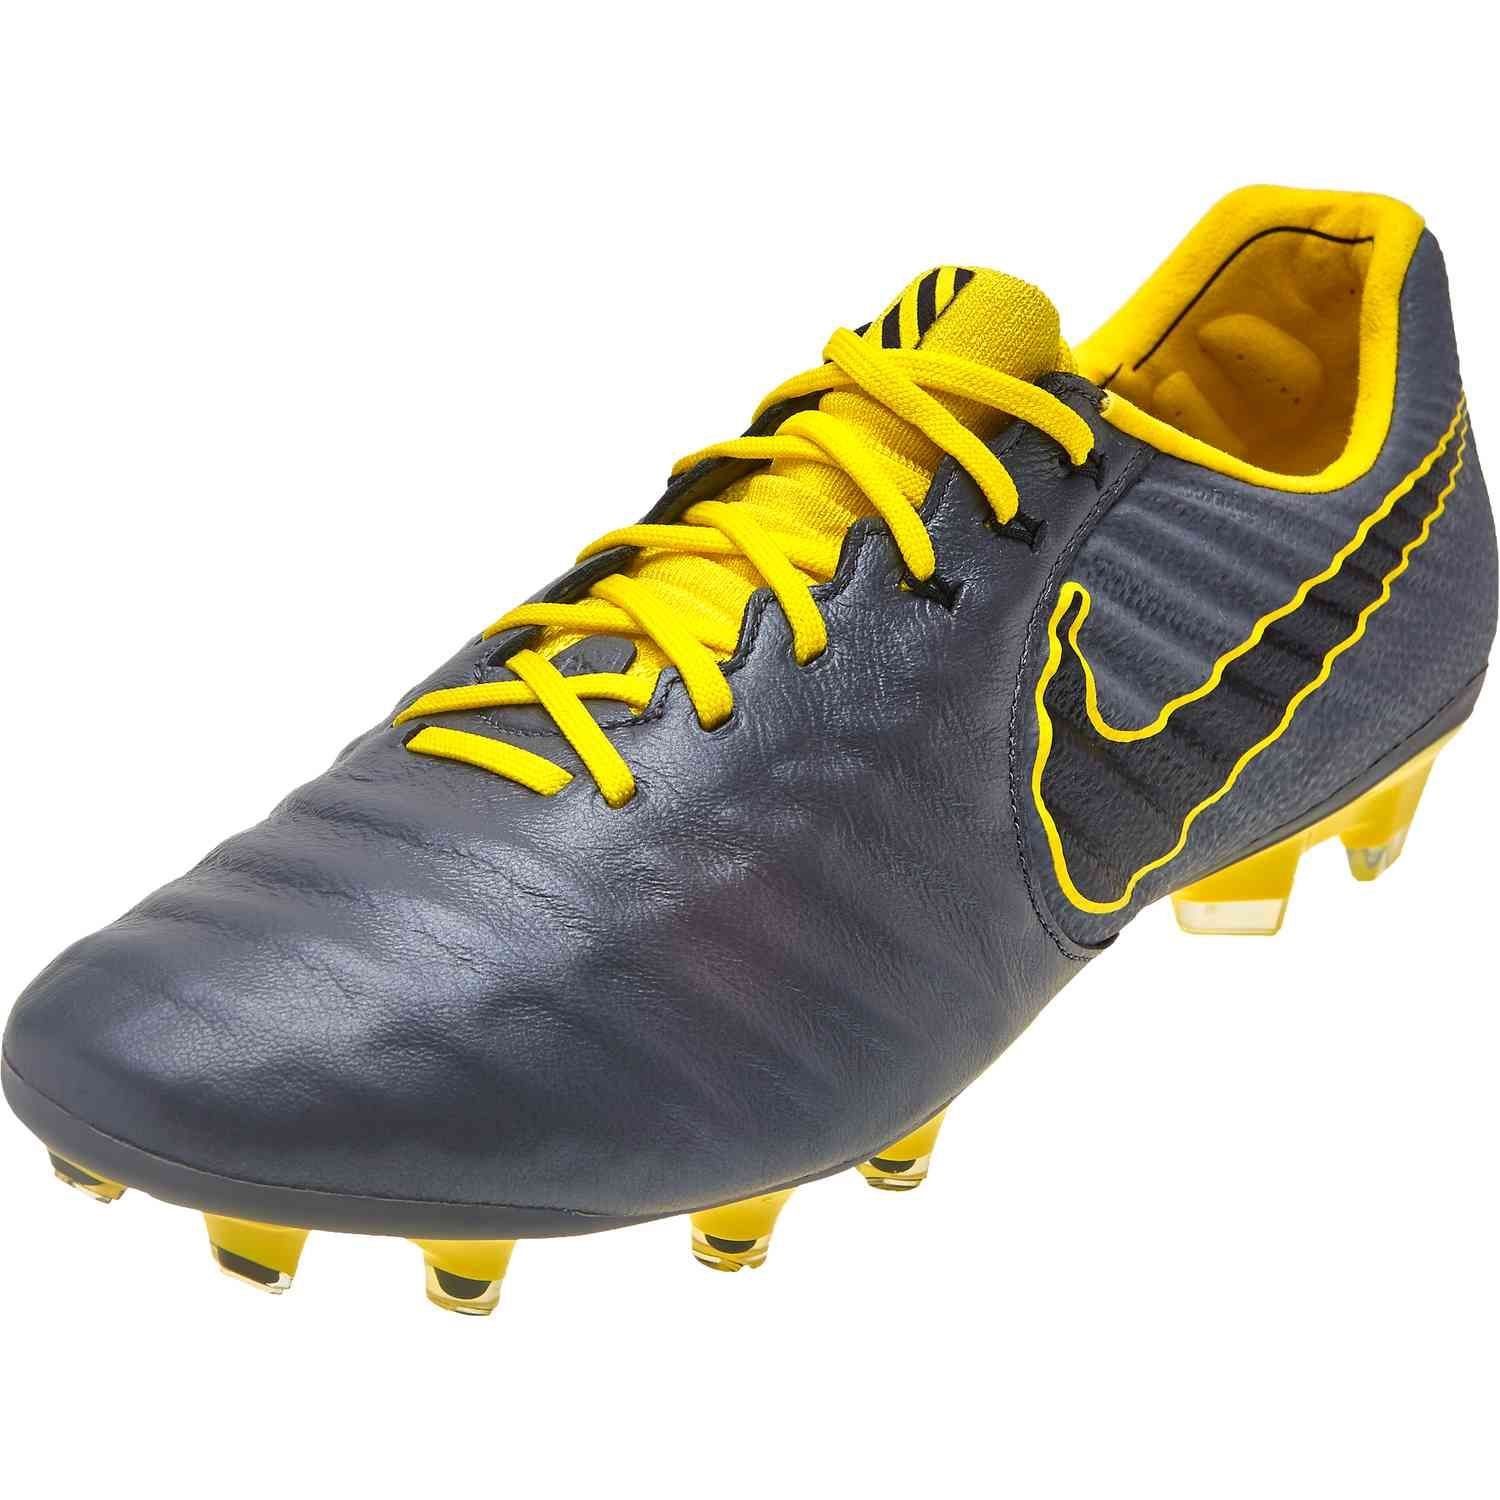 factory price b27a8 886e8 Buy the Game Over pack 2 Nike Tiempo Legend VII Elite